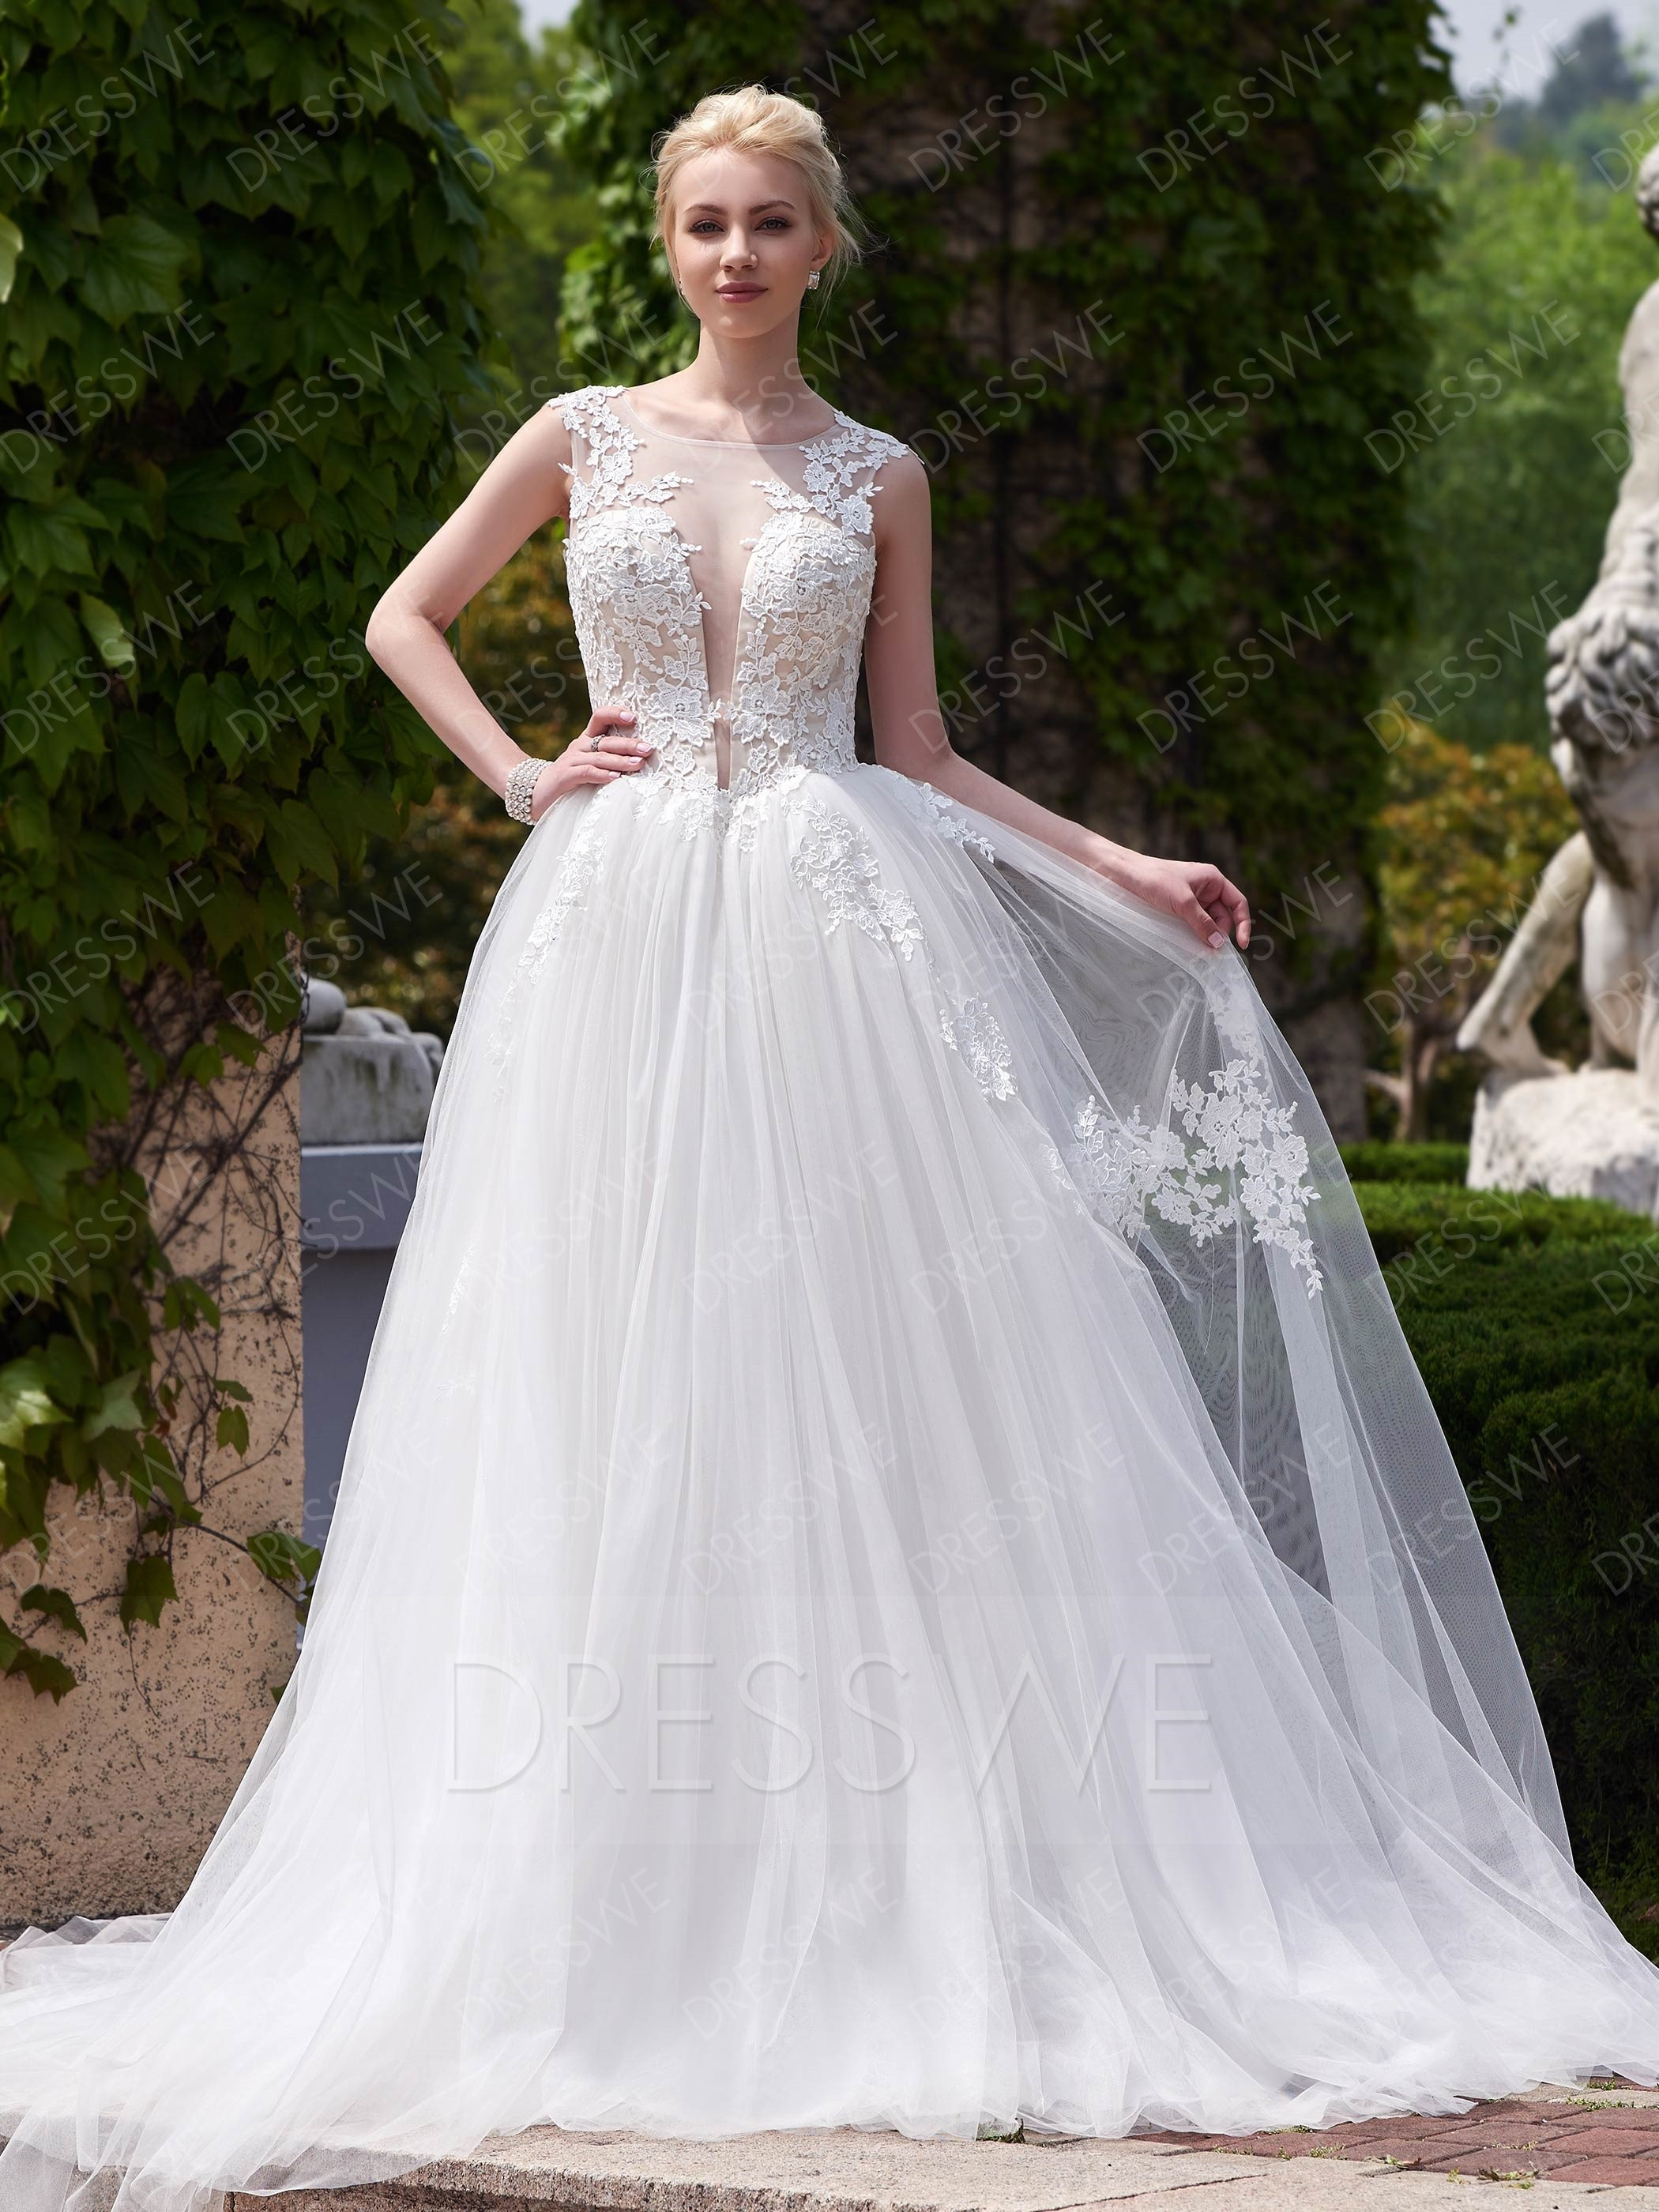 10bdcb014e73 Cute Wedding Dresses - Nini Dress